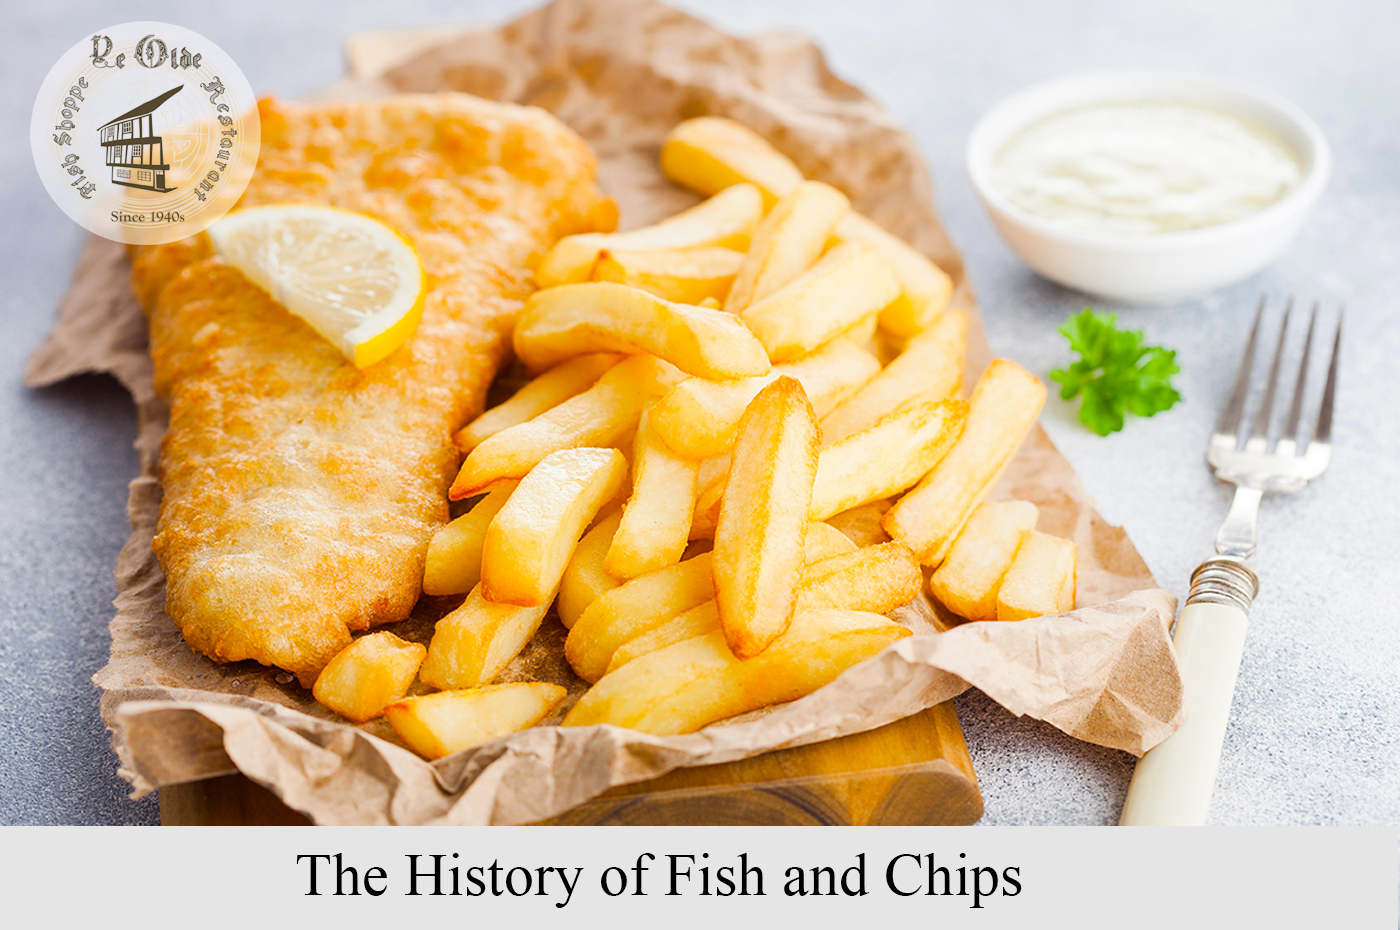 Ye Old Chip Shoppe – The History of Fish and Chips